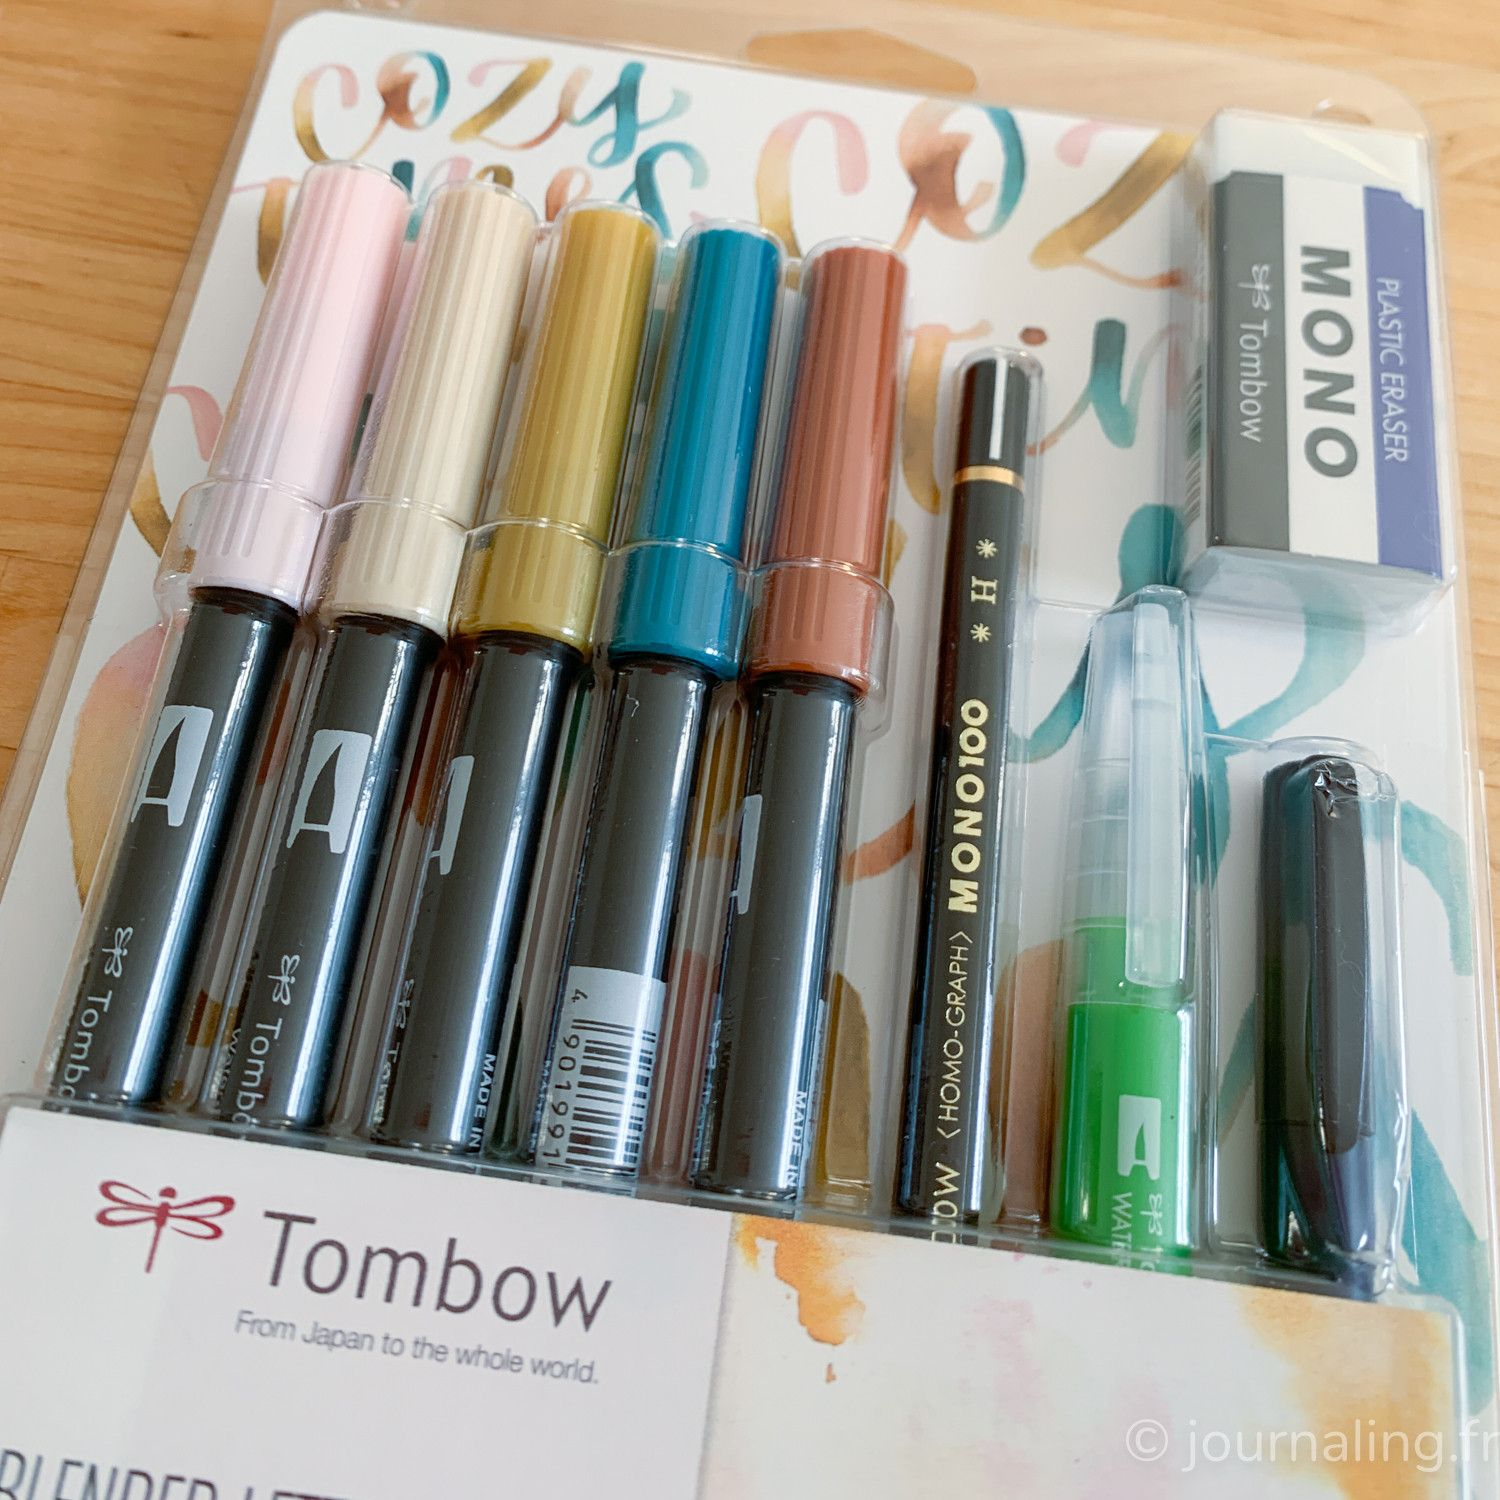 Tombow - Kit Blended lettering Cozy times